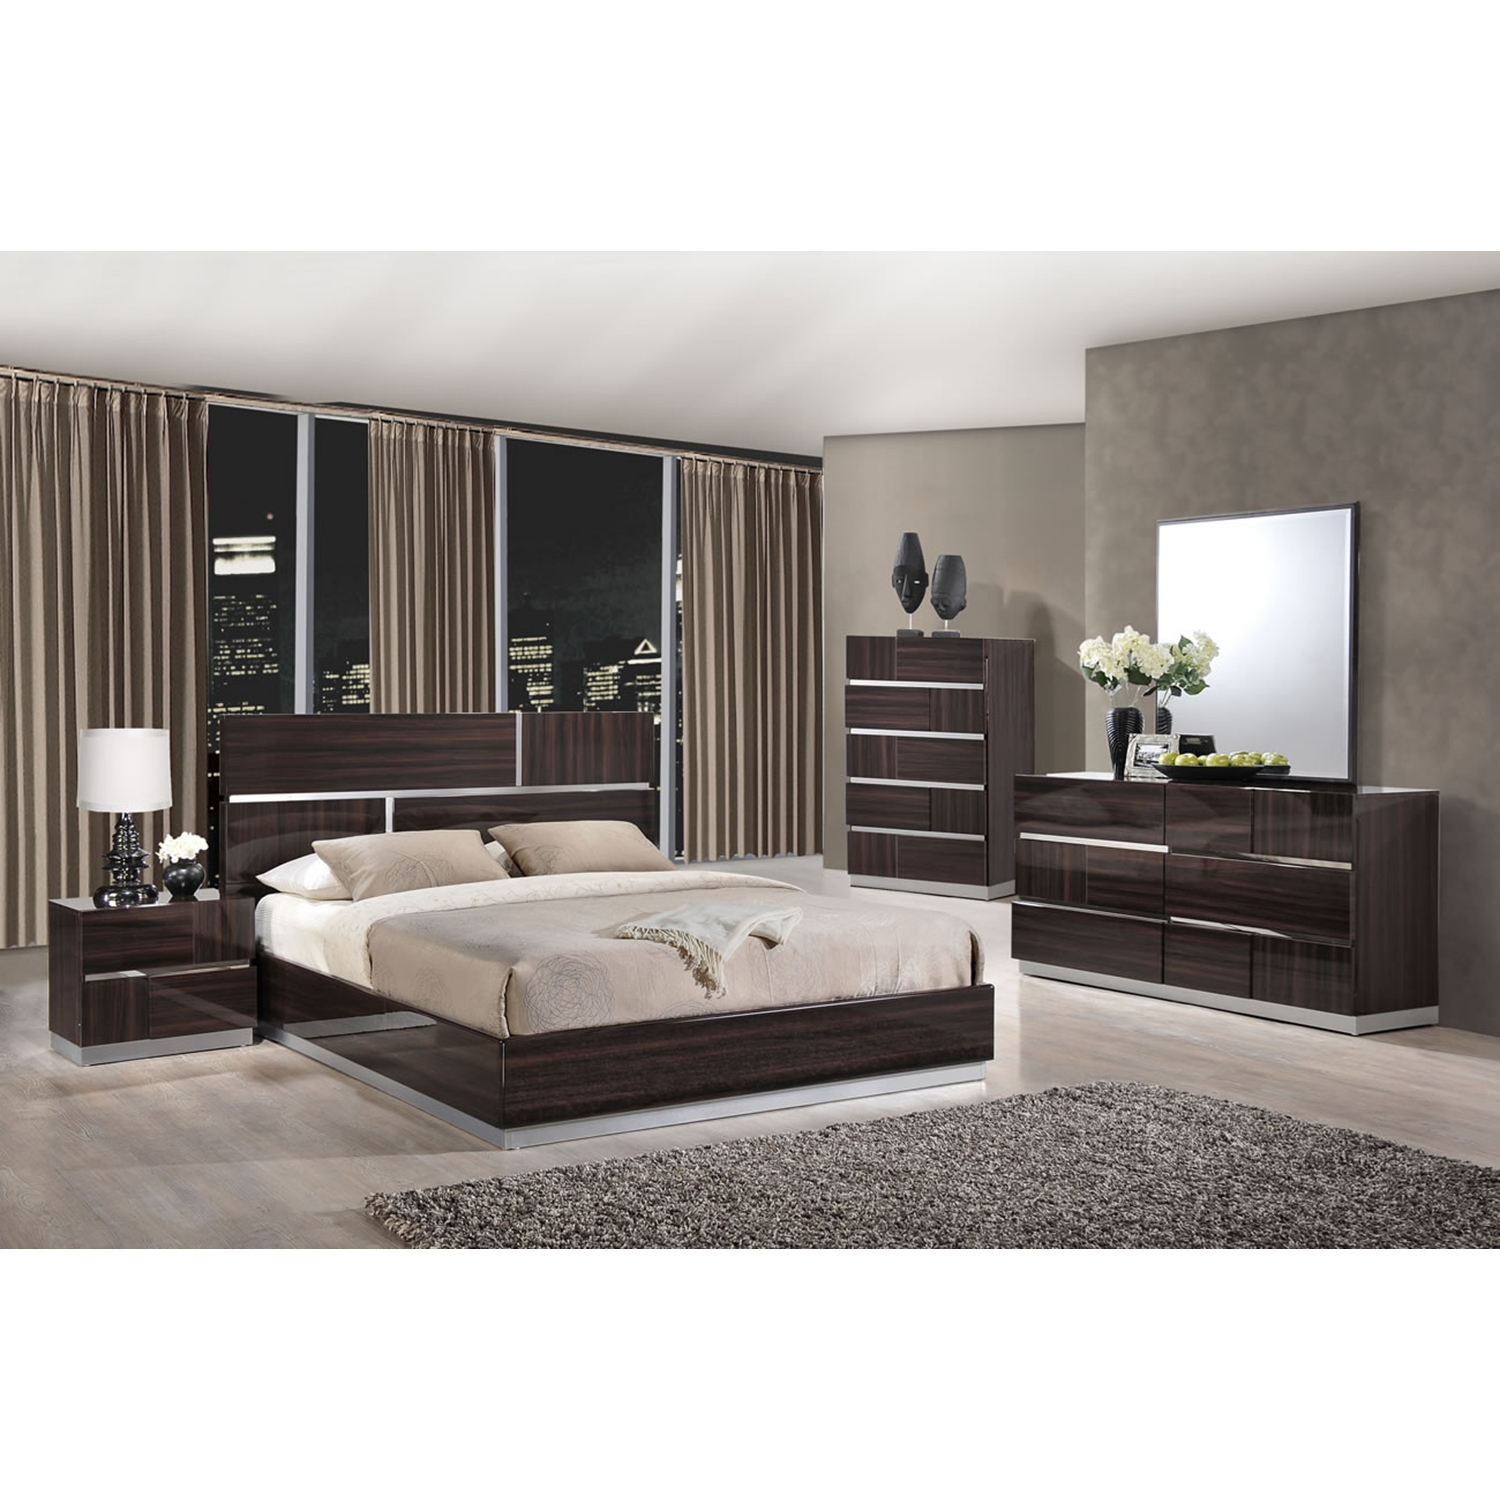 Tribeca Chest - High Gloss Brown Wood Grain - GLO-TRIBECA-110-CH